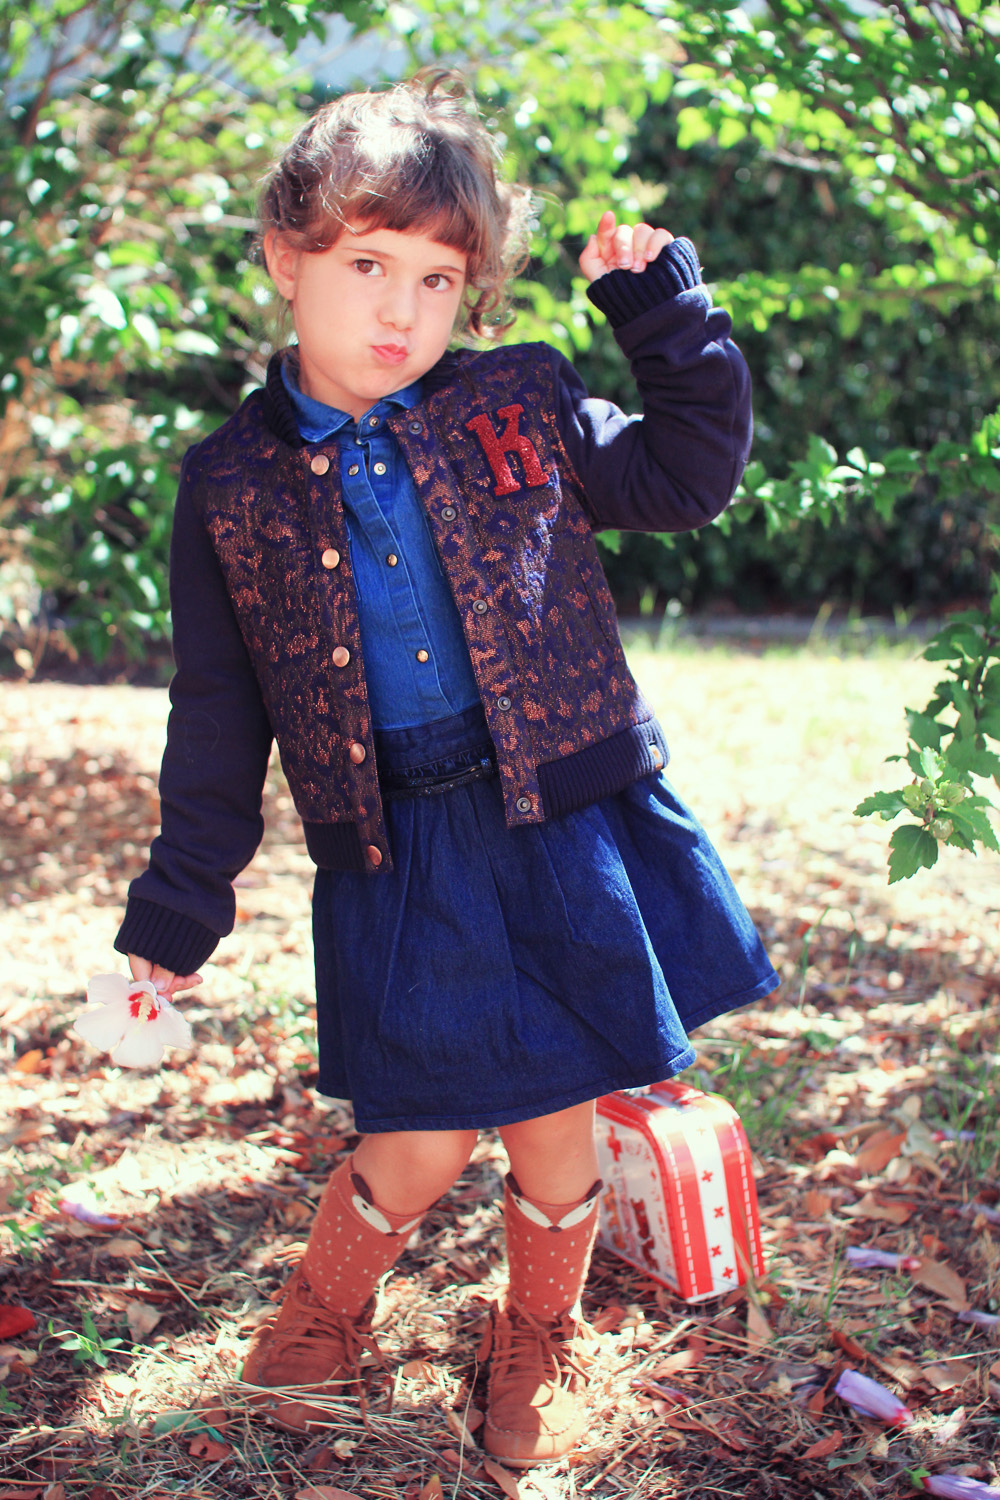 okks-look-kid-poulettemagique-11